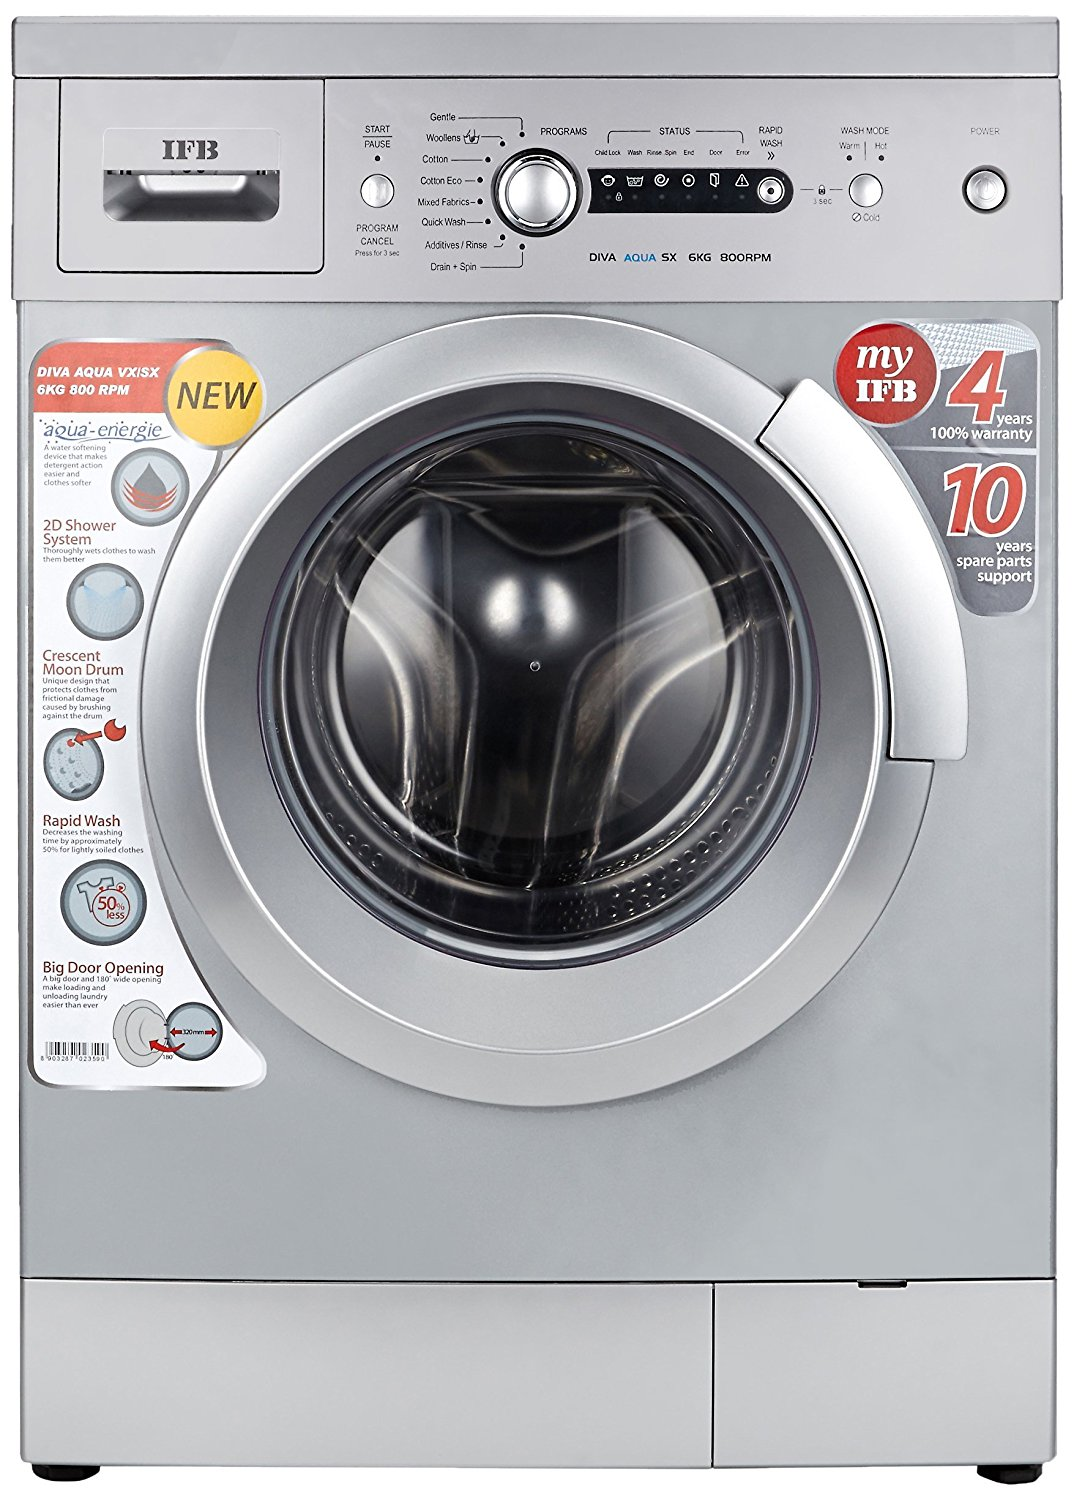 Ifb Washing Machine Drum Belt Price : ifb 6 kg fully automatic front loading washing machine diva aqua sx silver twins electronics ~ Russianpoet.info Haus und Dekorationen